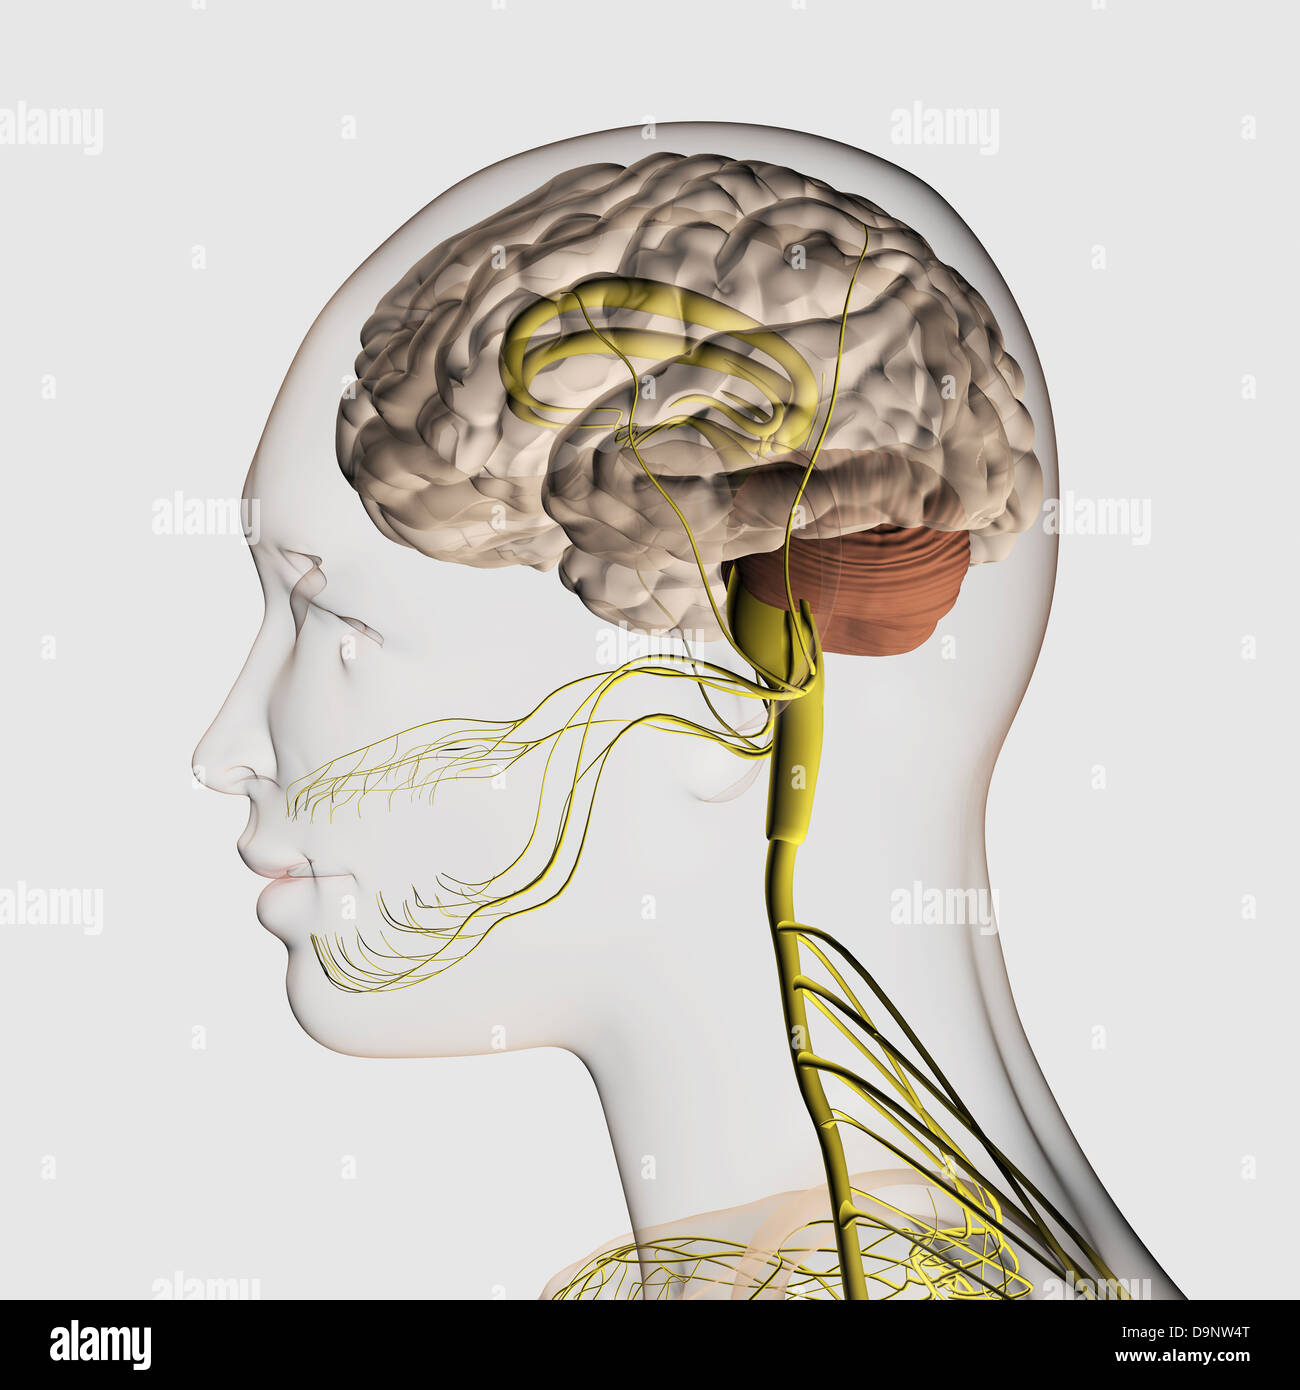 Medical illustration of the human nervous system and brain, close-up. - Stock Image